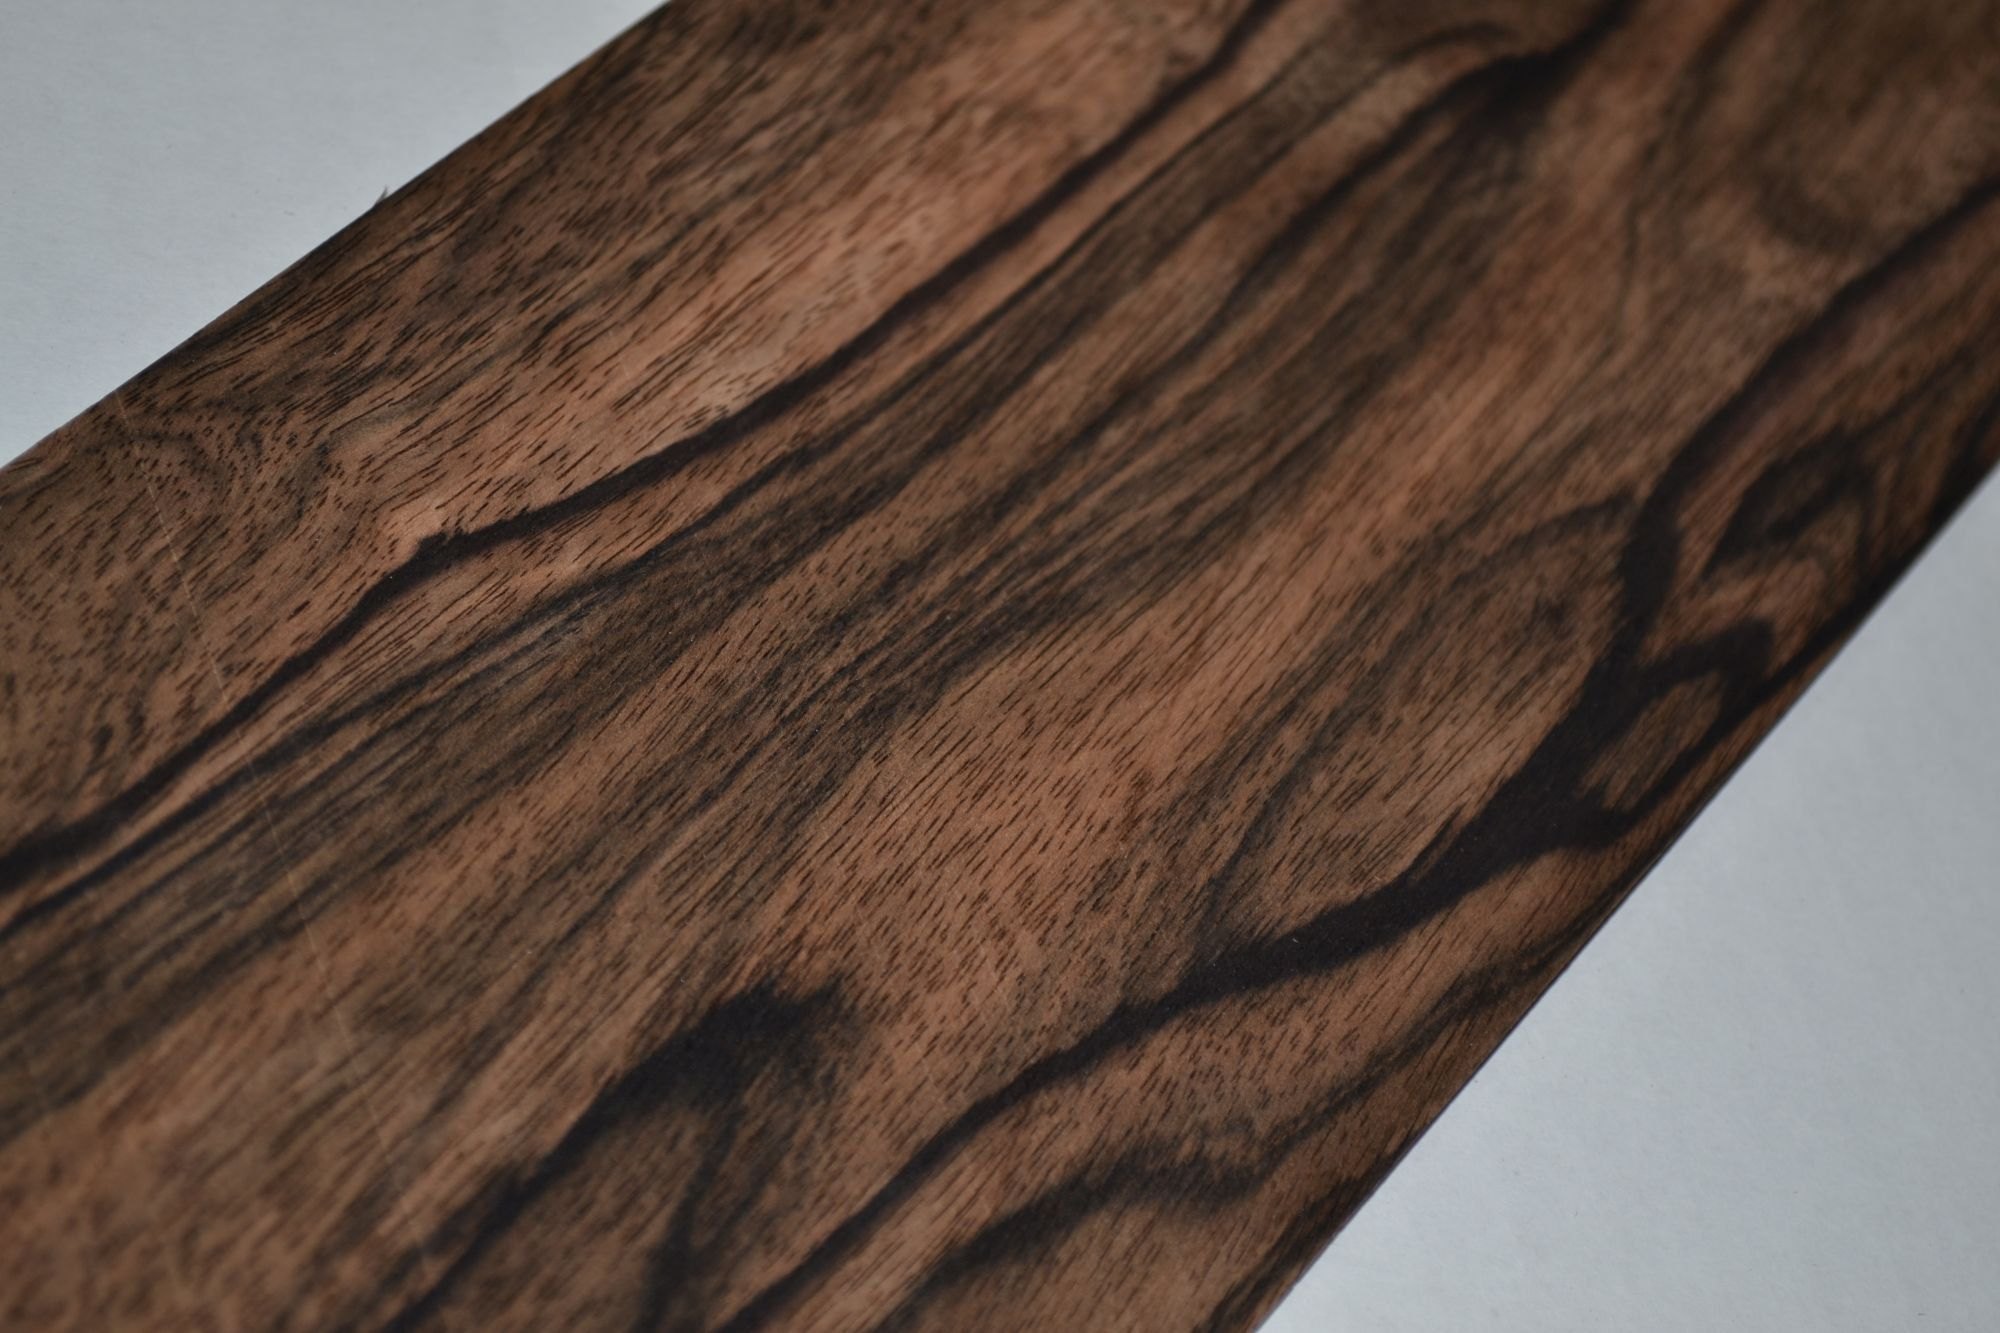 Ebony Raw Wood Veneer Sheets 4 5 X 28 5 Inches 1 42nd Or 6mm Thick Wood Veneer Wood Veneer Sheets Raw Wood